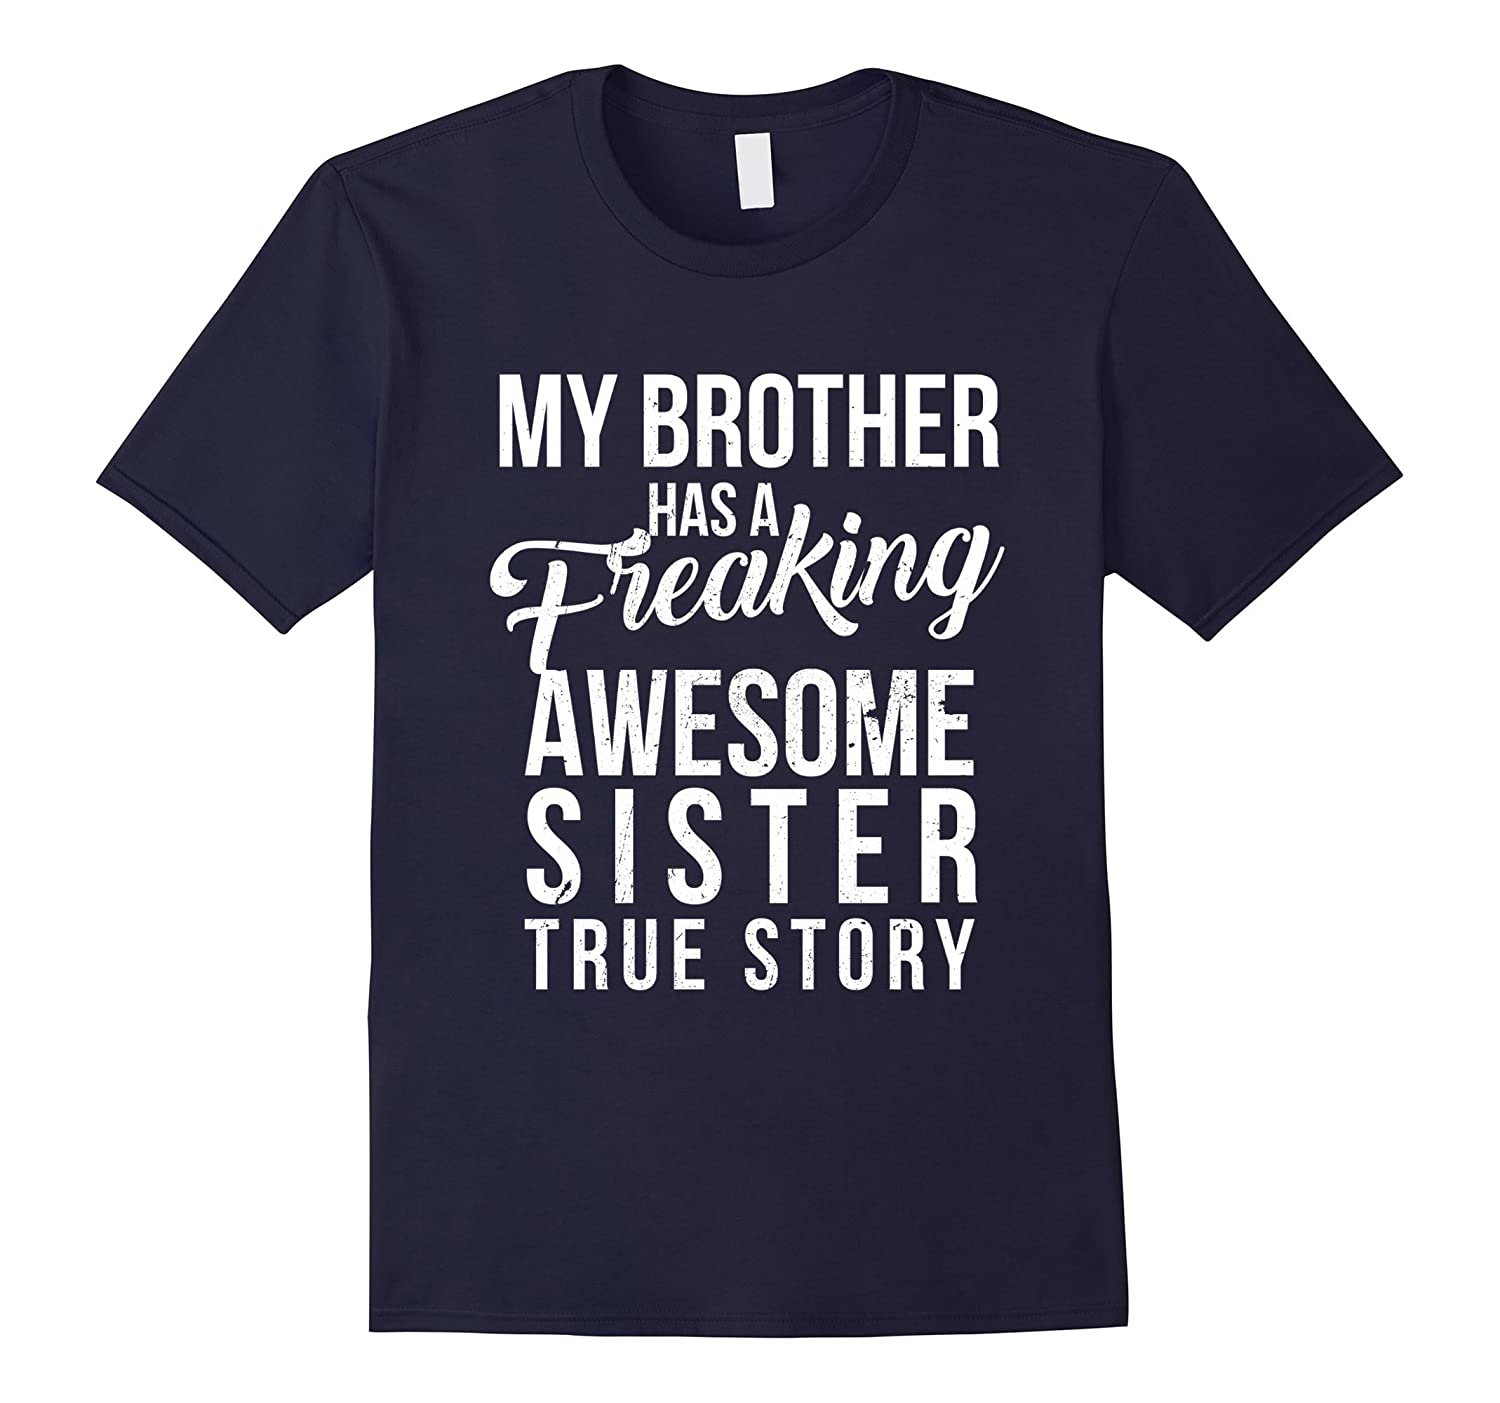 Best Seller: My brother has a freaking awesome sister cool-CL